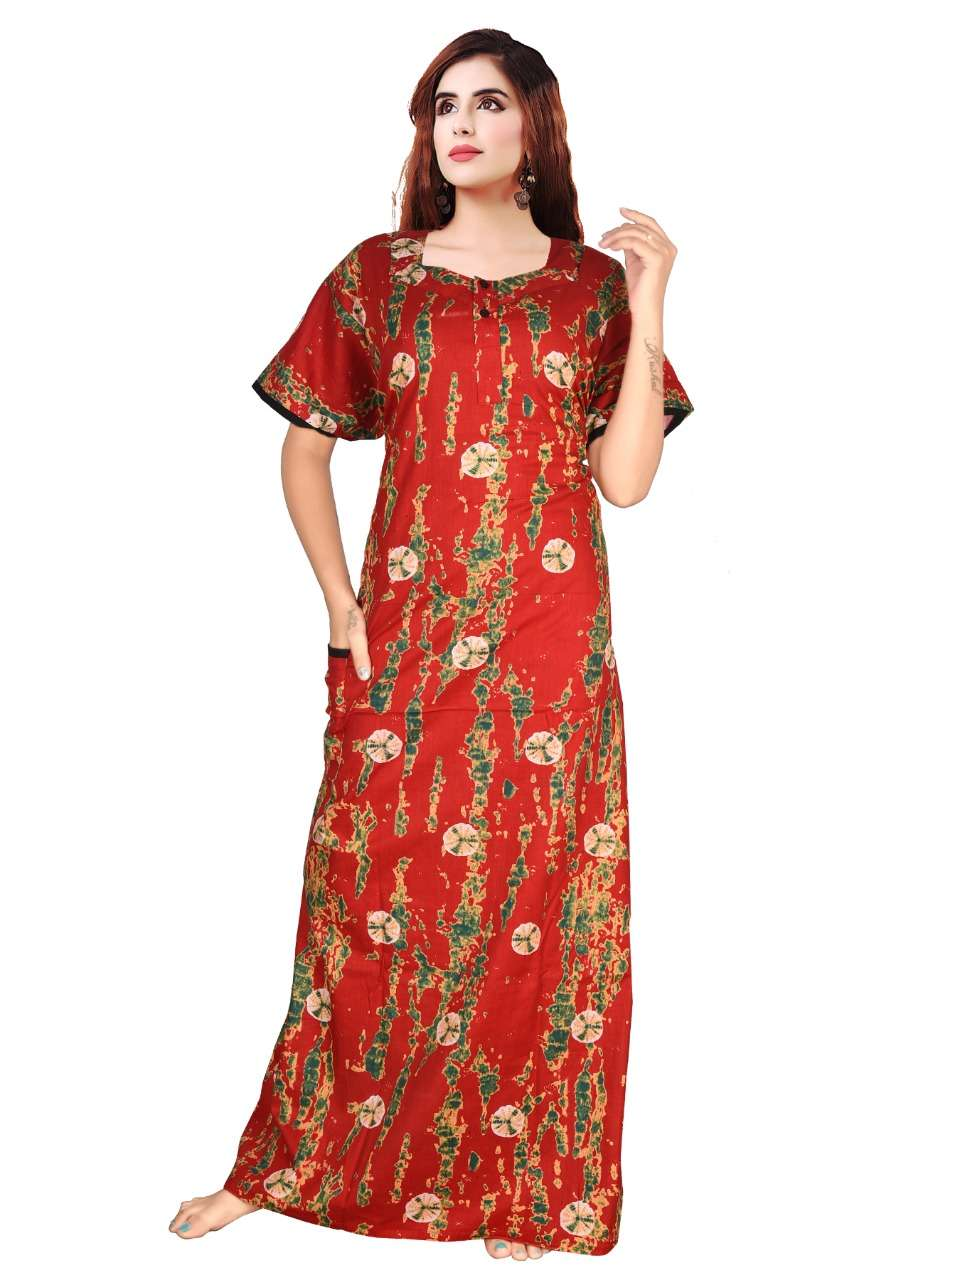 COTTON NIGHTY COLLETION FOR WOMEN AT WHOLESALE PRICE